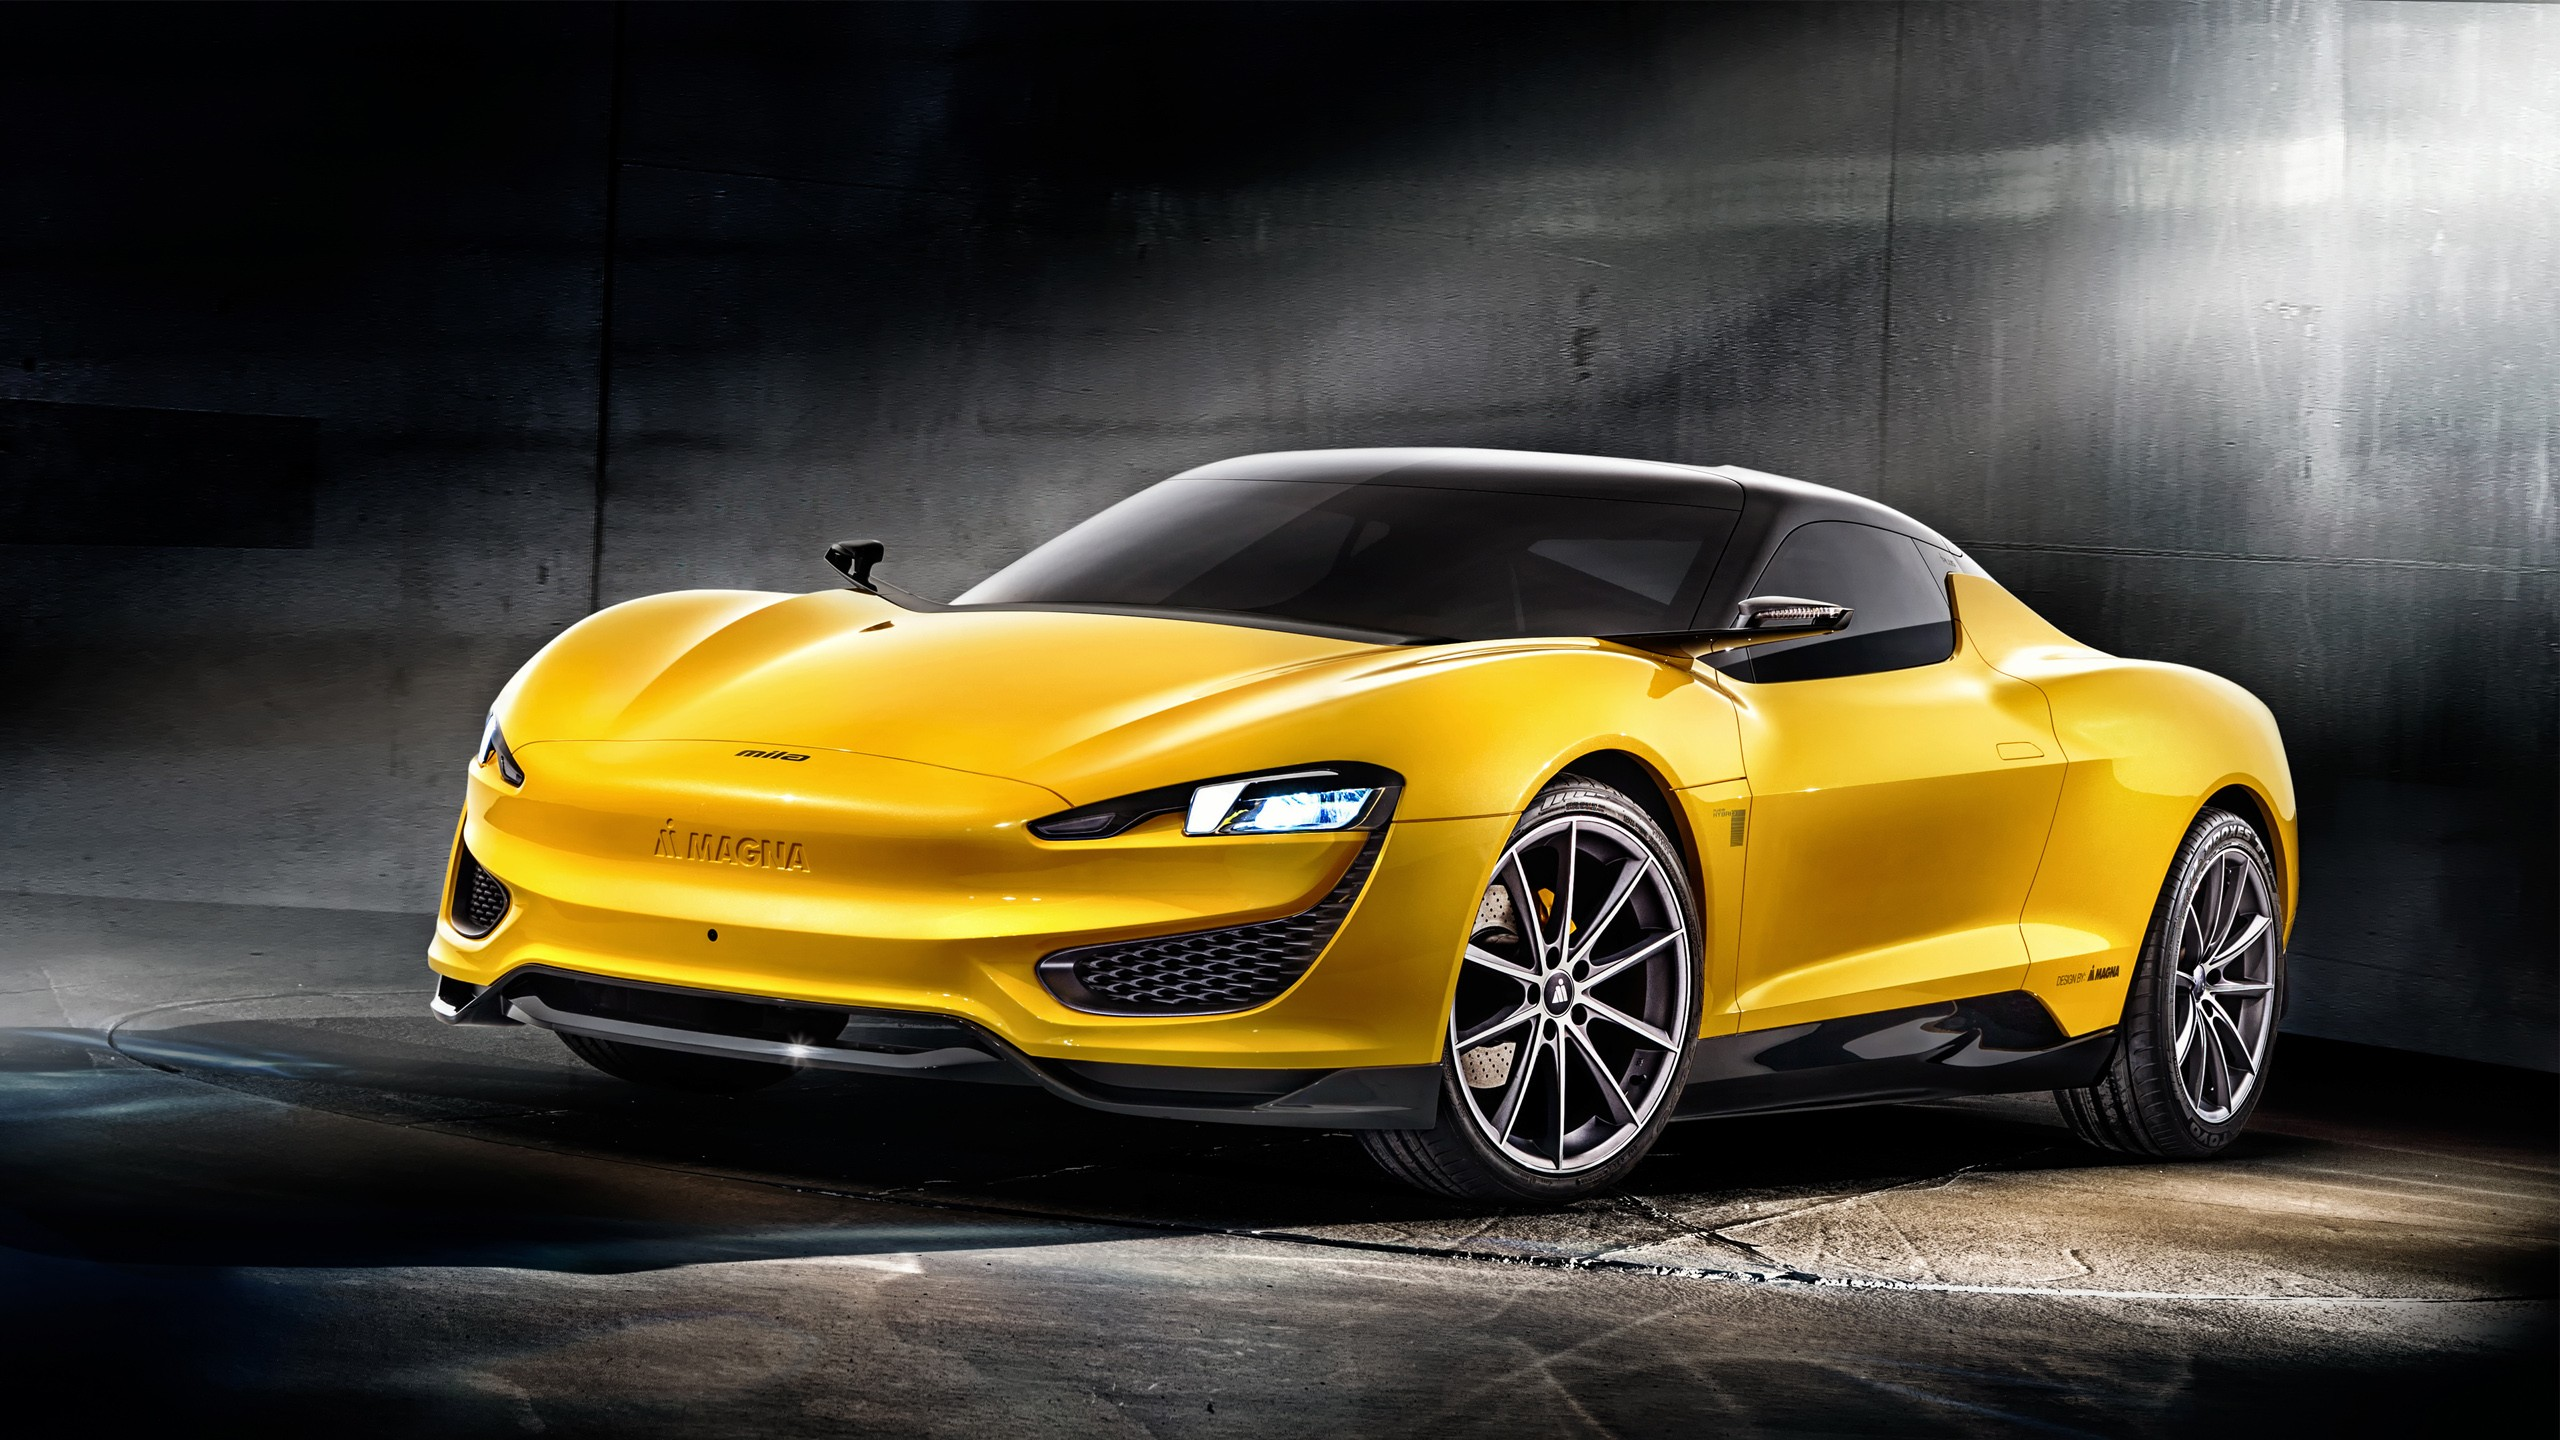 2015 Magna Steyr Mila Plus Hybrid Concept Wallpaper Hd Car Wallpapers Id 5430